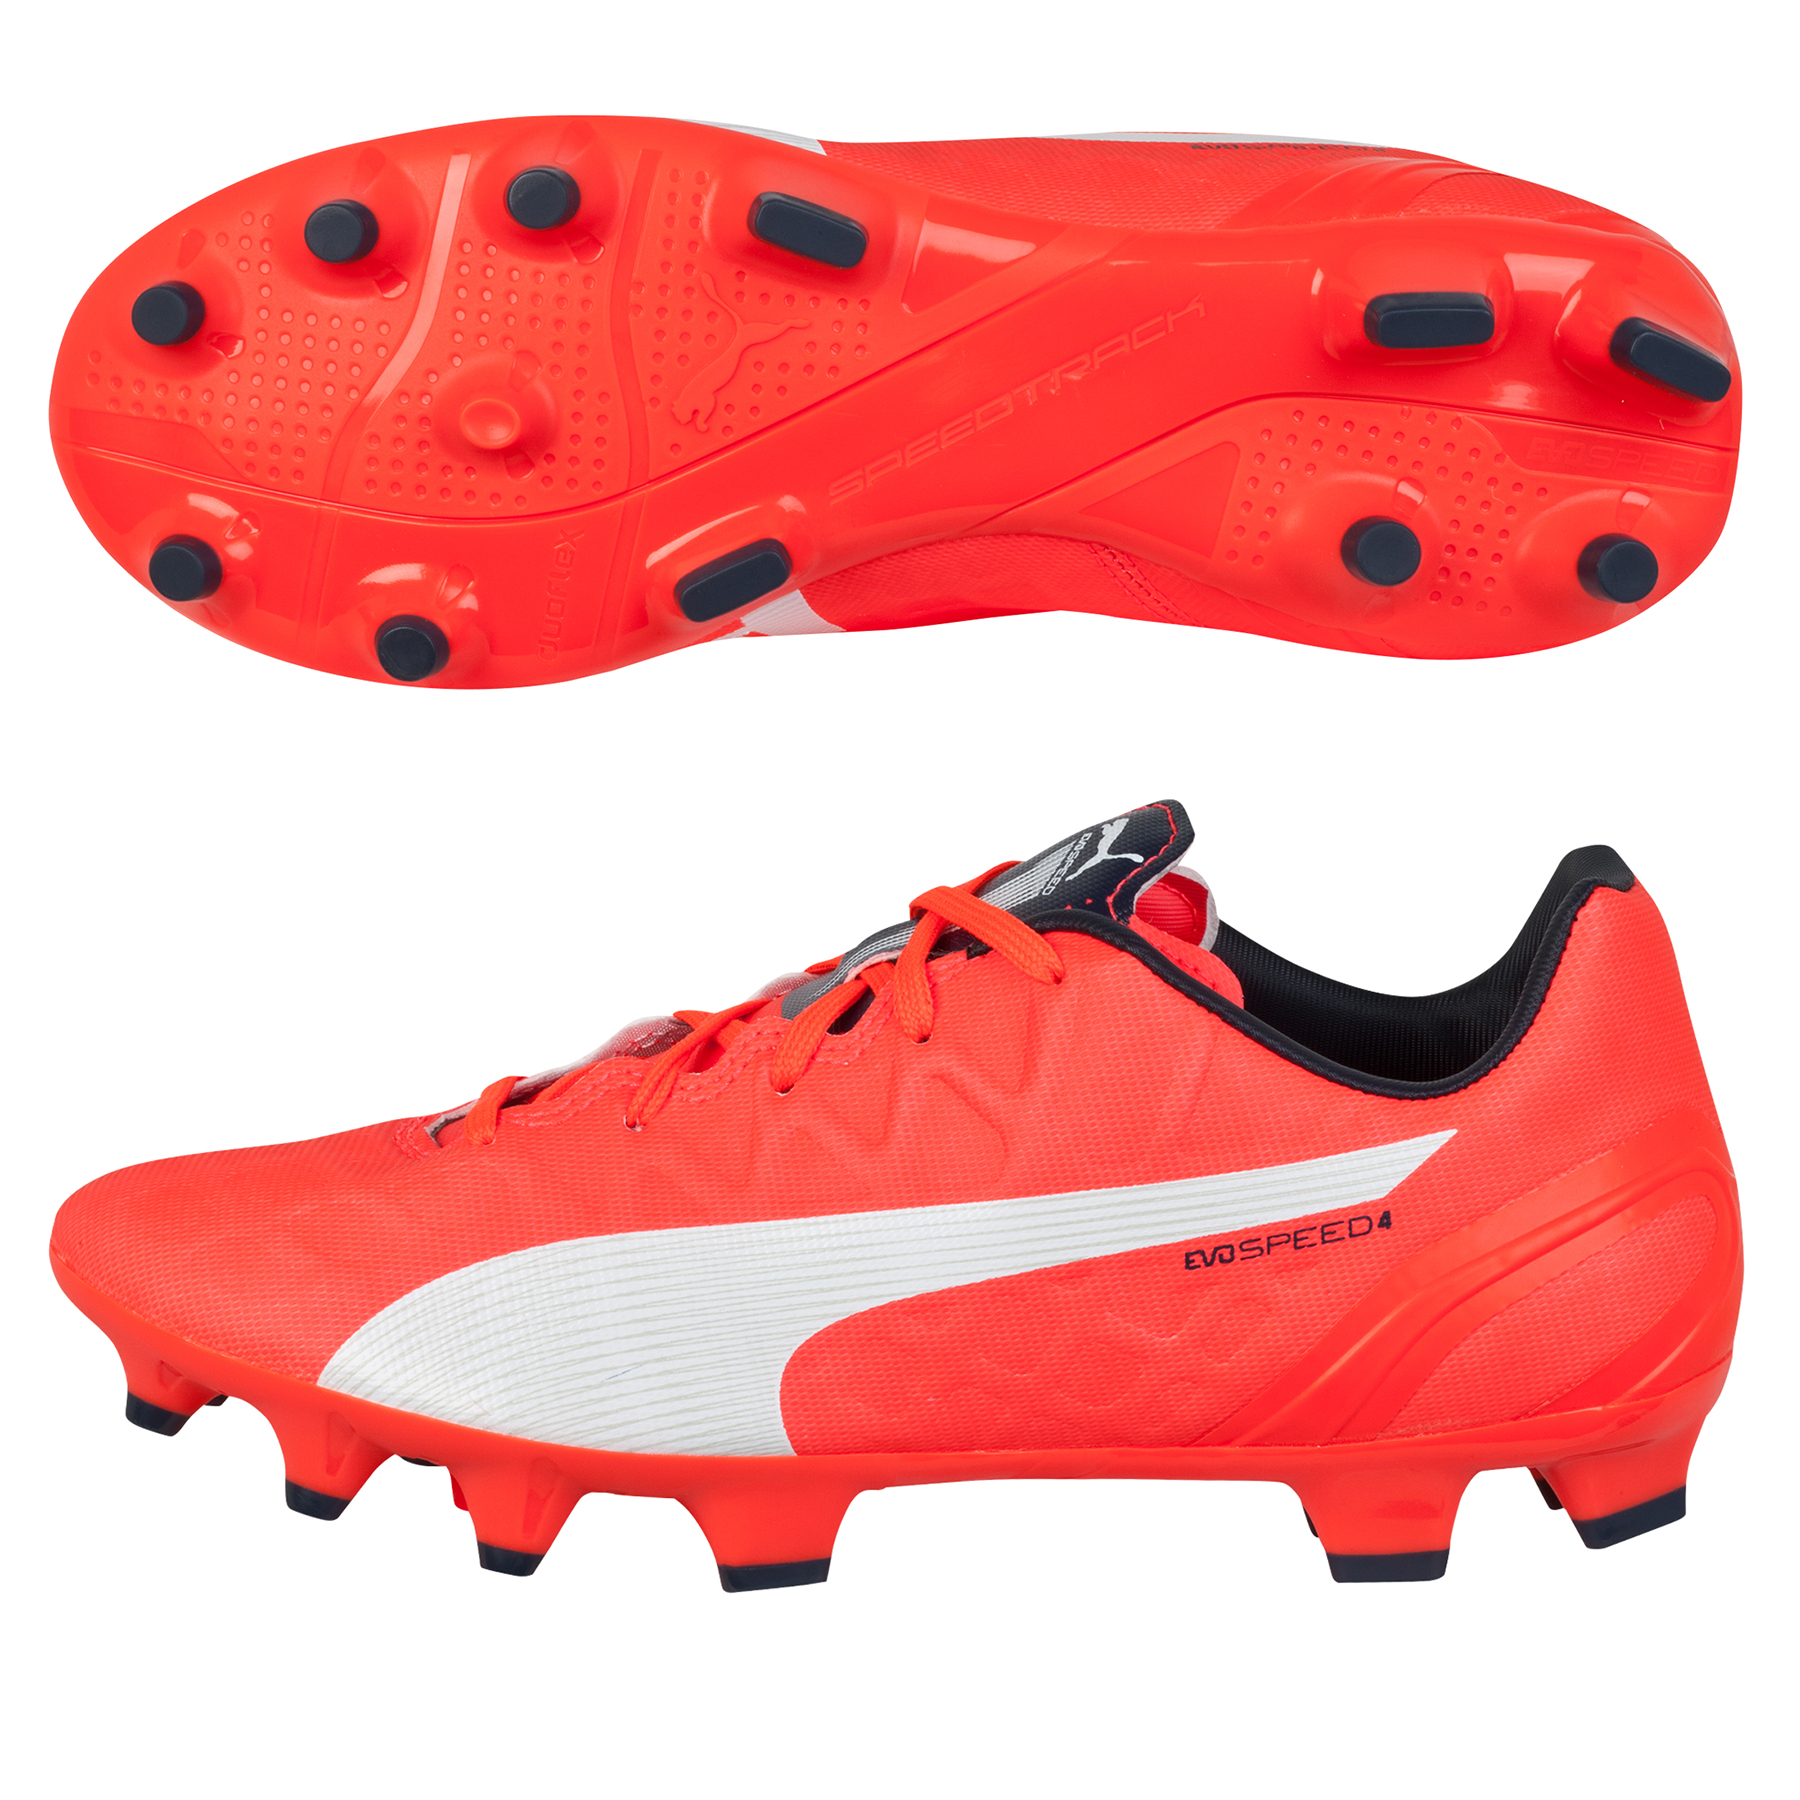 Puma evoSPEED 4.4 Firm Ground Football Boots  Kids Orange